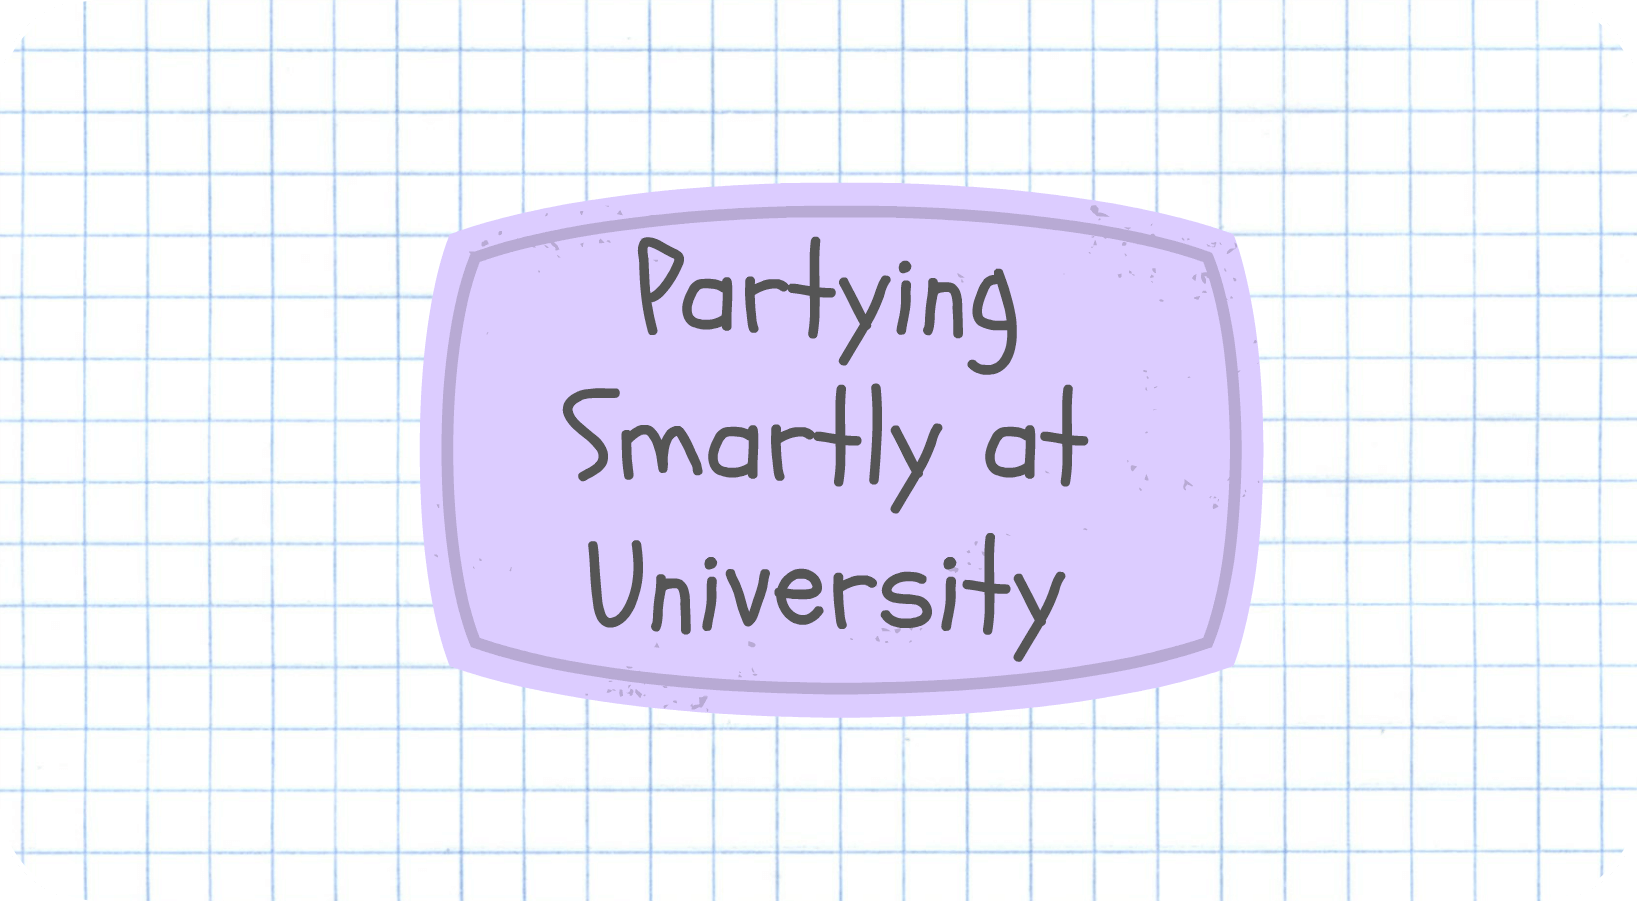 Partying Smartly at University